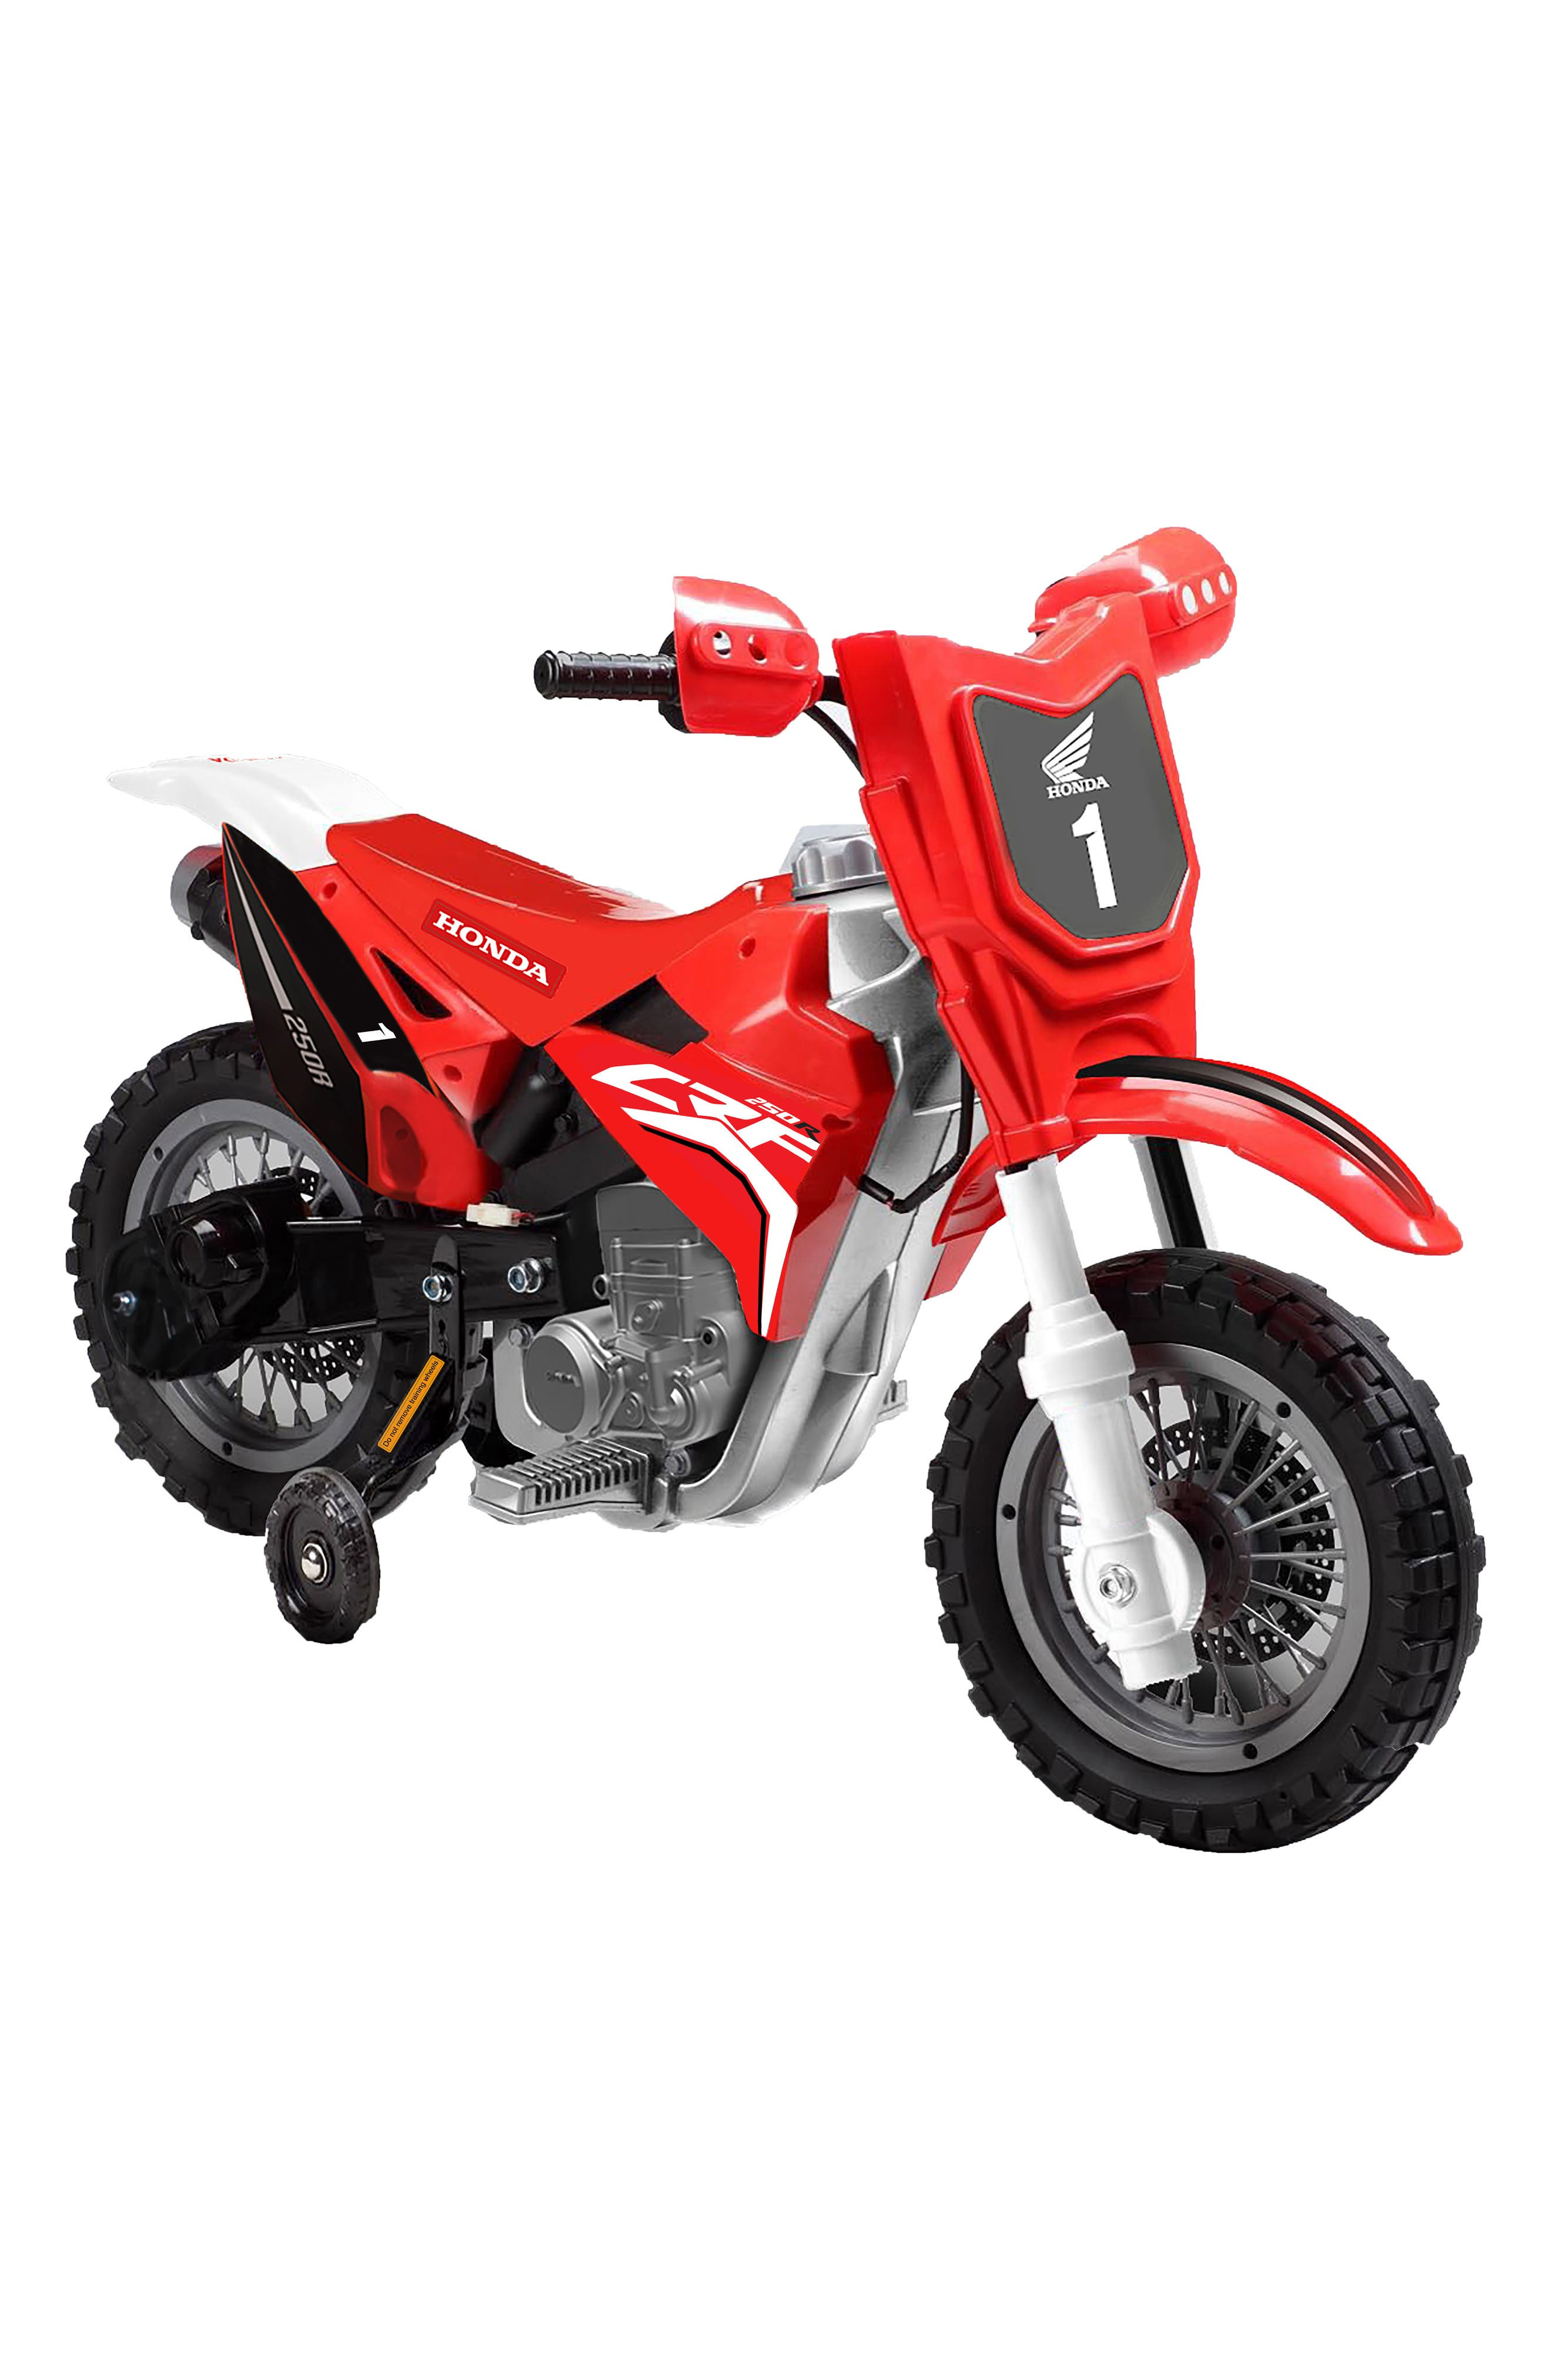 Honda Dirt Bike Ride-On Toy Motorcycle,                             Main thumbnail 1, color,                             RED